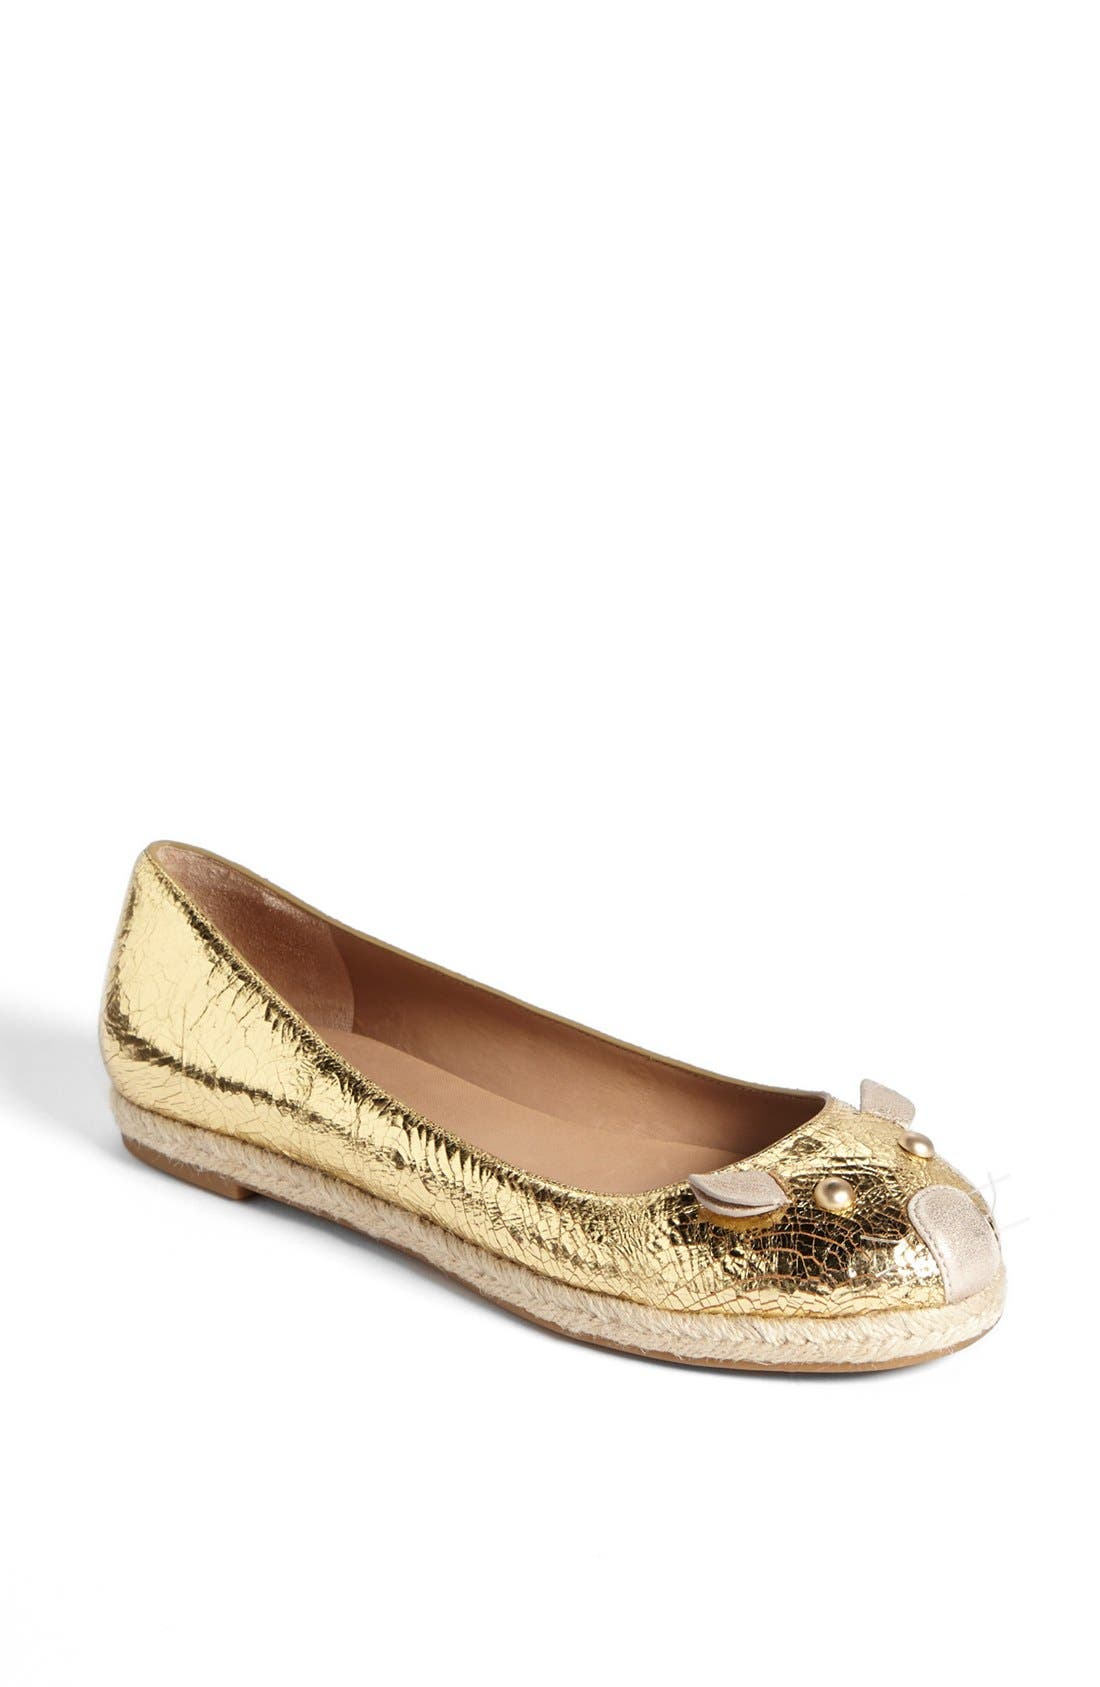 Main Image - MARC BY MARC JACOBS 'Mouse' Metallic Calfskin Leather Espadrille Flat